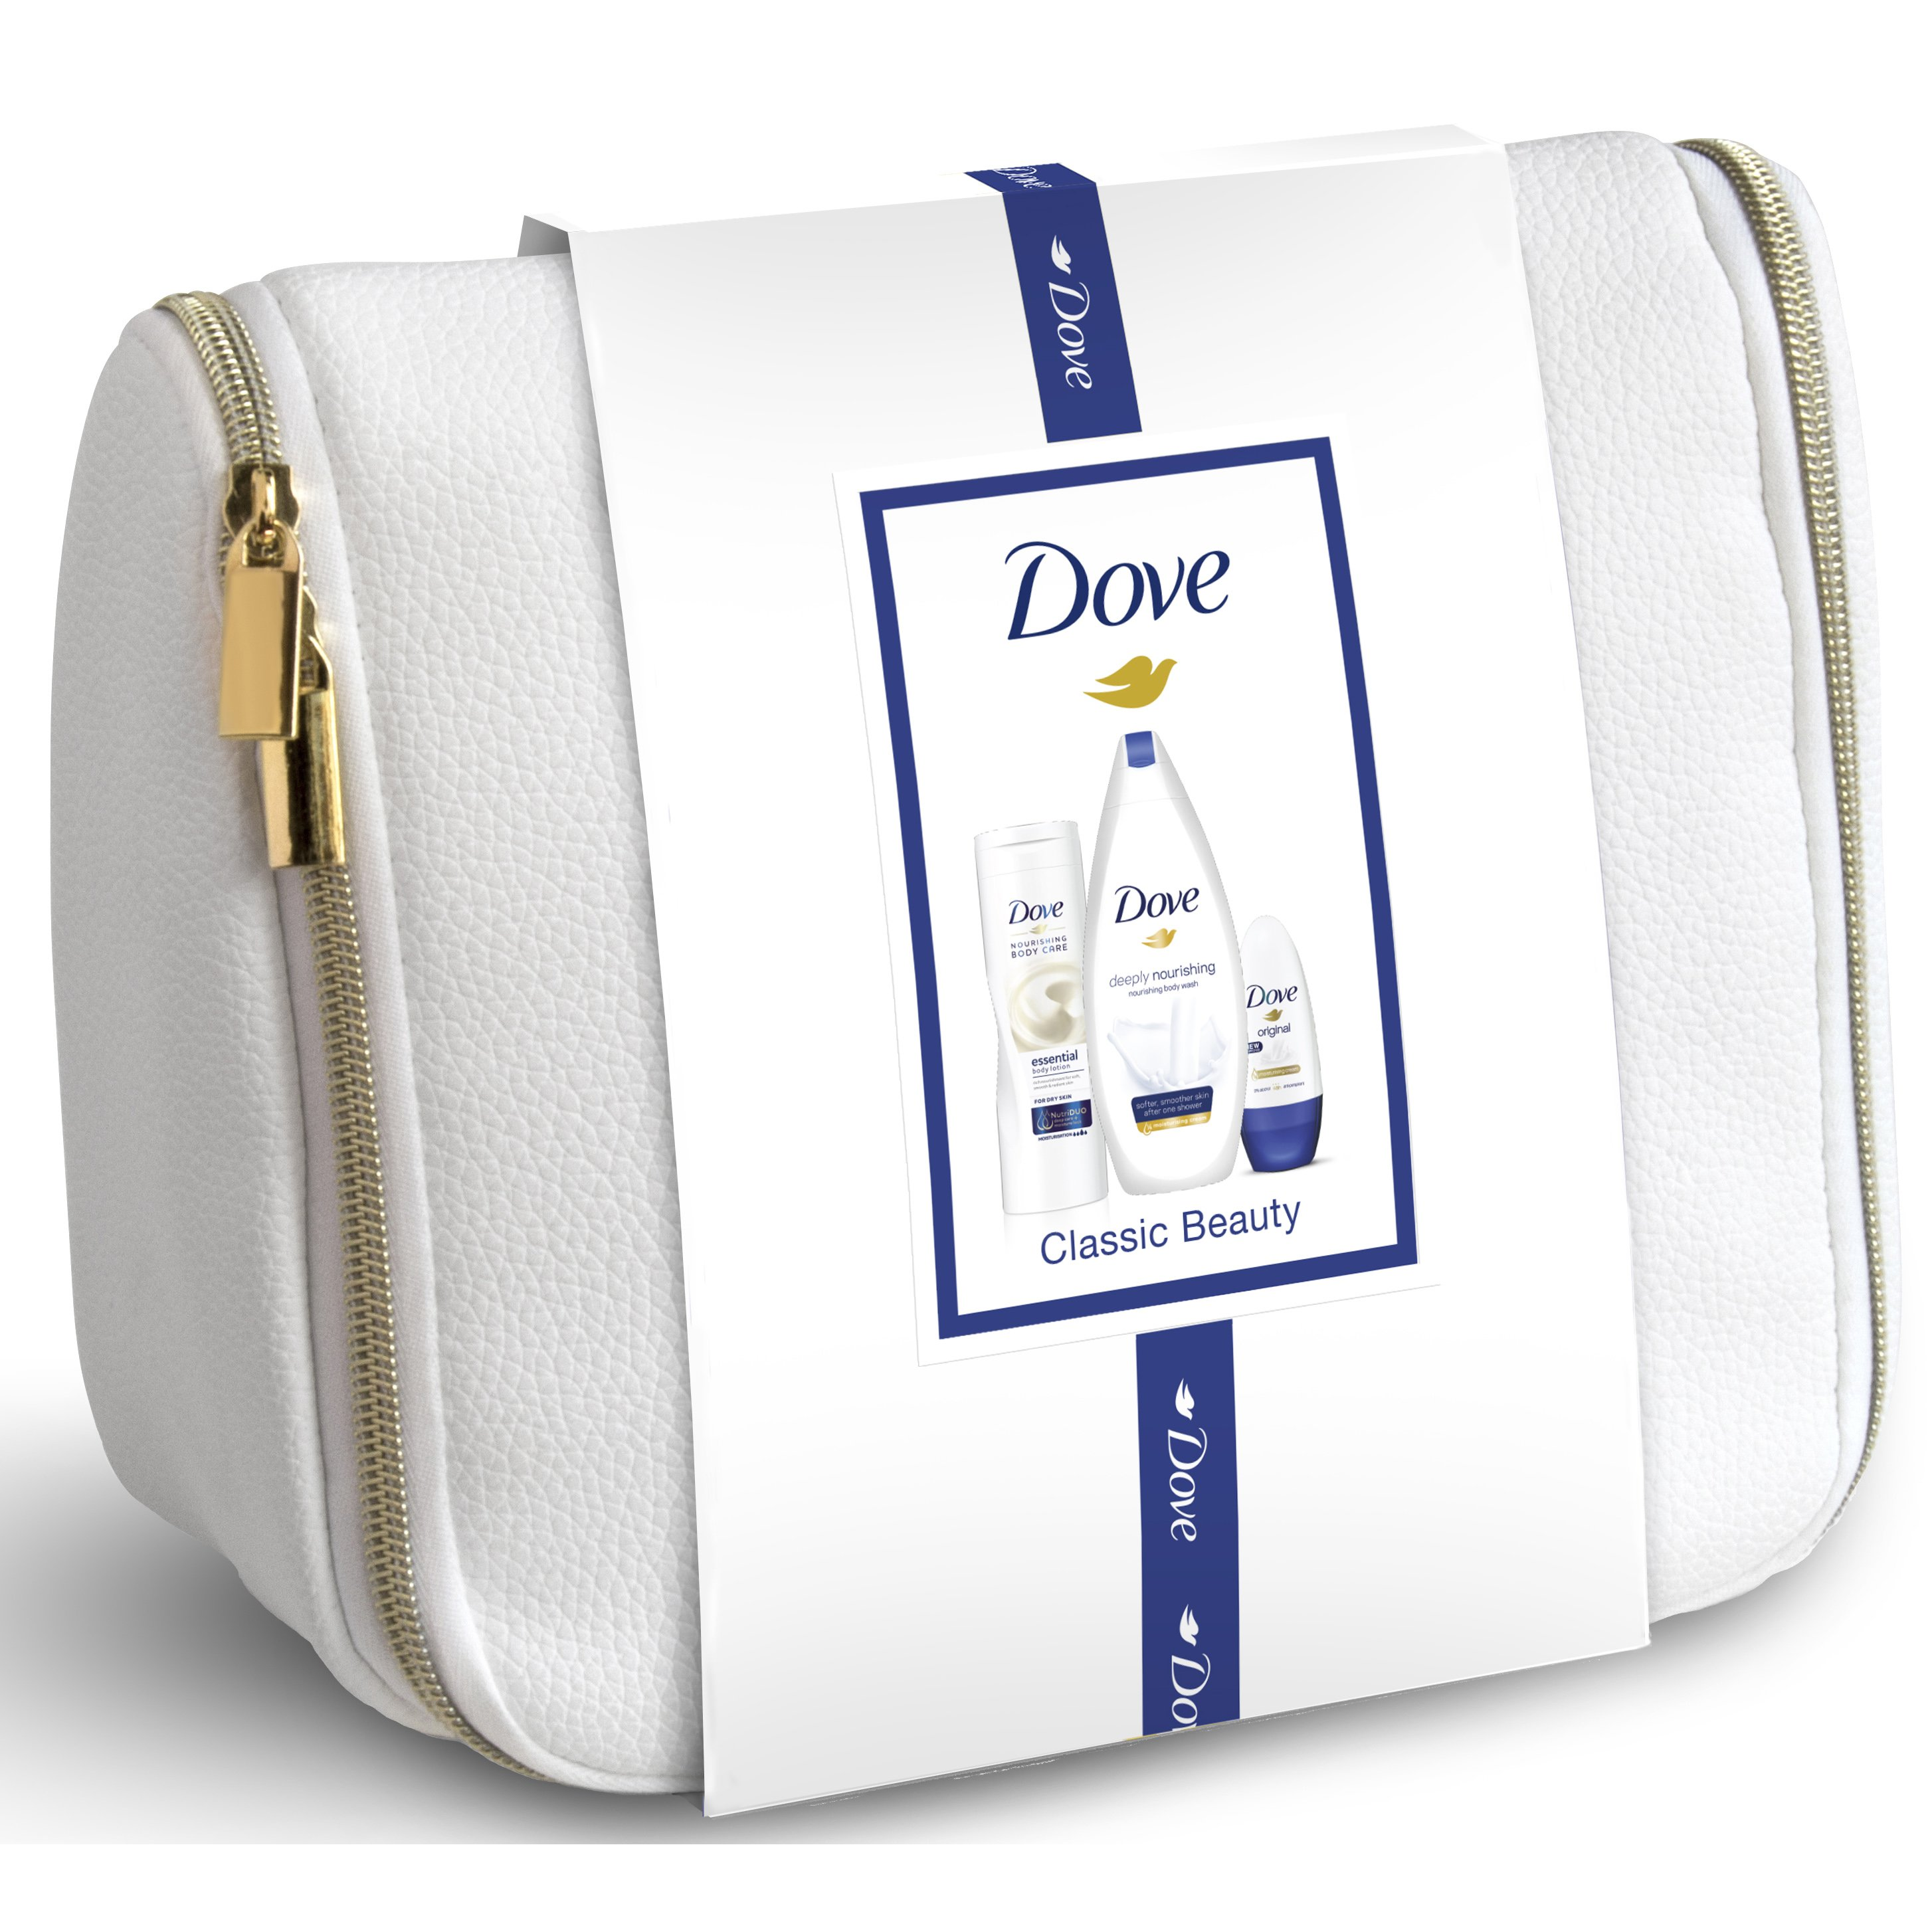 Dove Classic Beauty Deeply Nourishing Body Wash 250ml, Essential Body Milk 250ml, Original Roll On 50ml & Πρακτικό Νεσεσέρ